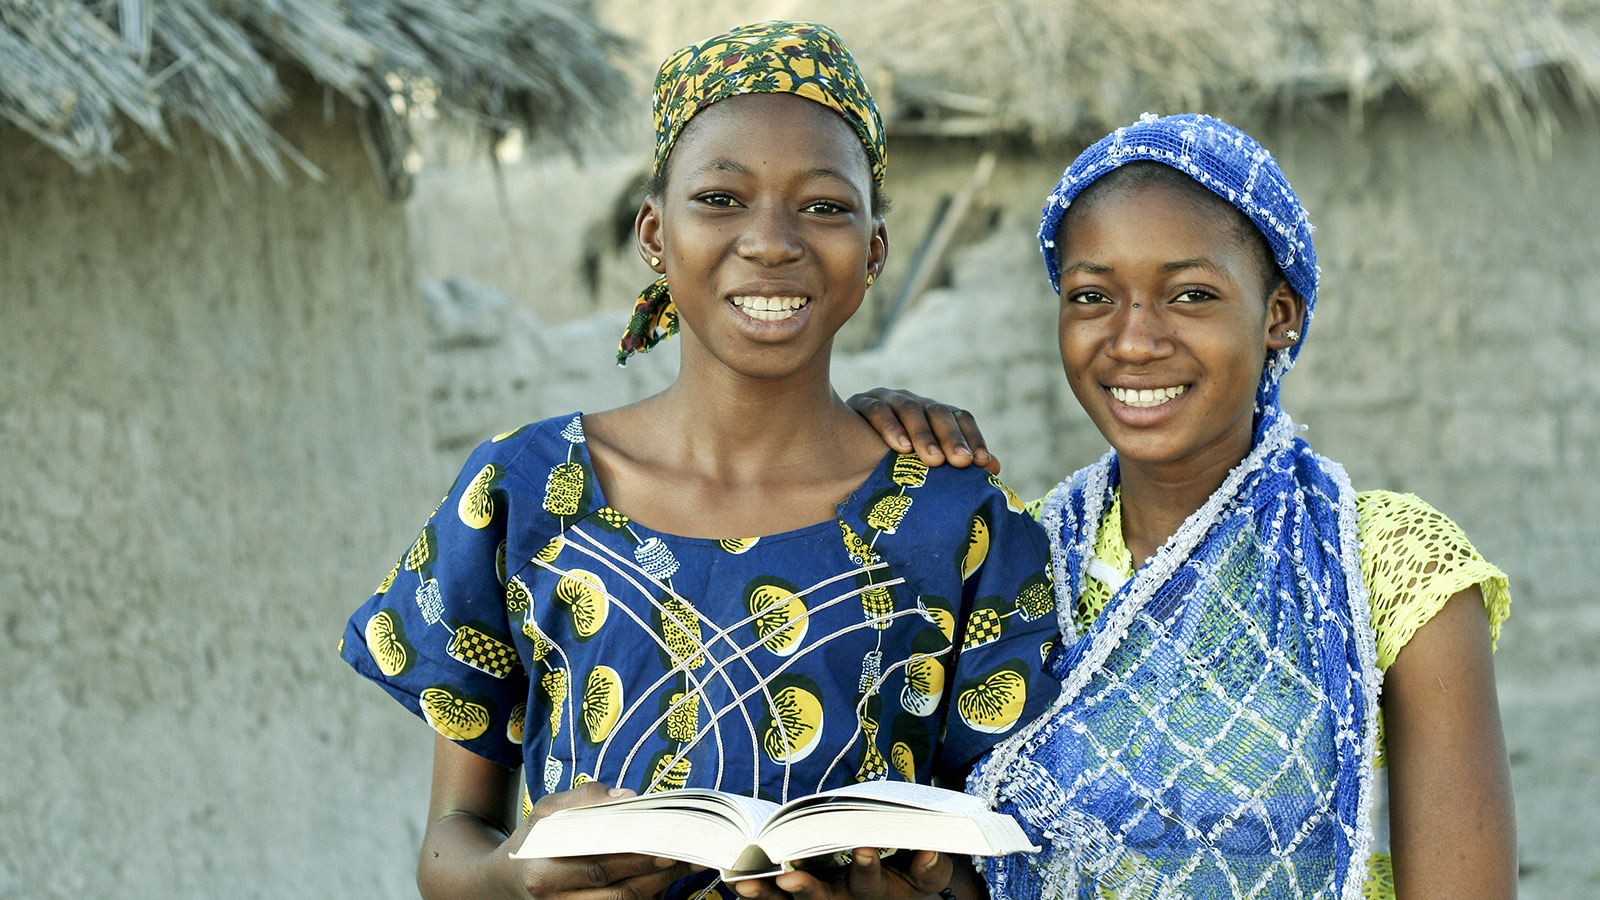 d091db972 Informal cash savings groups are driving female entrepreneurship in Nigeria